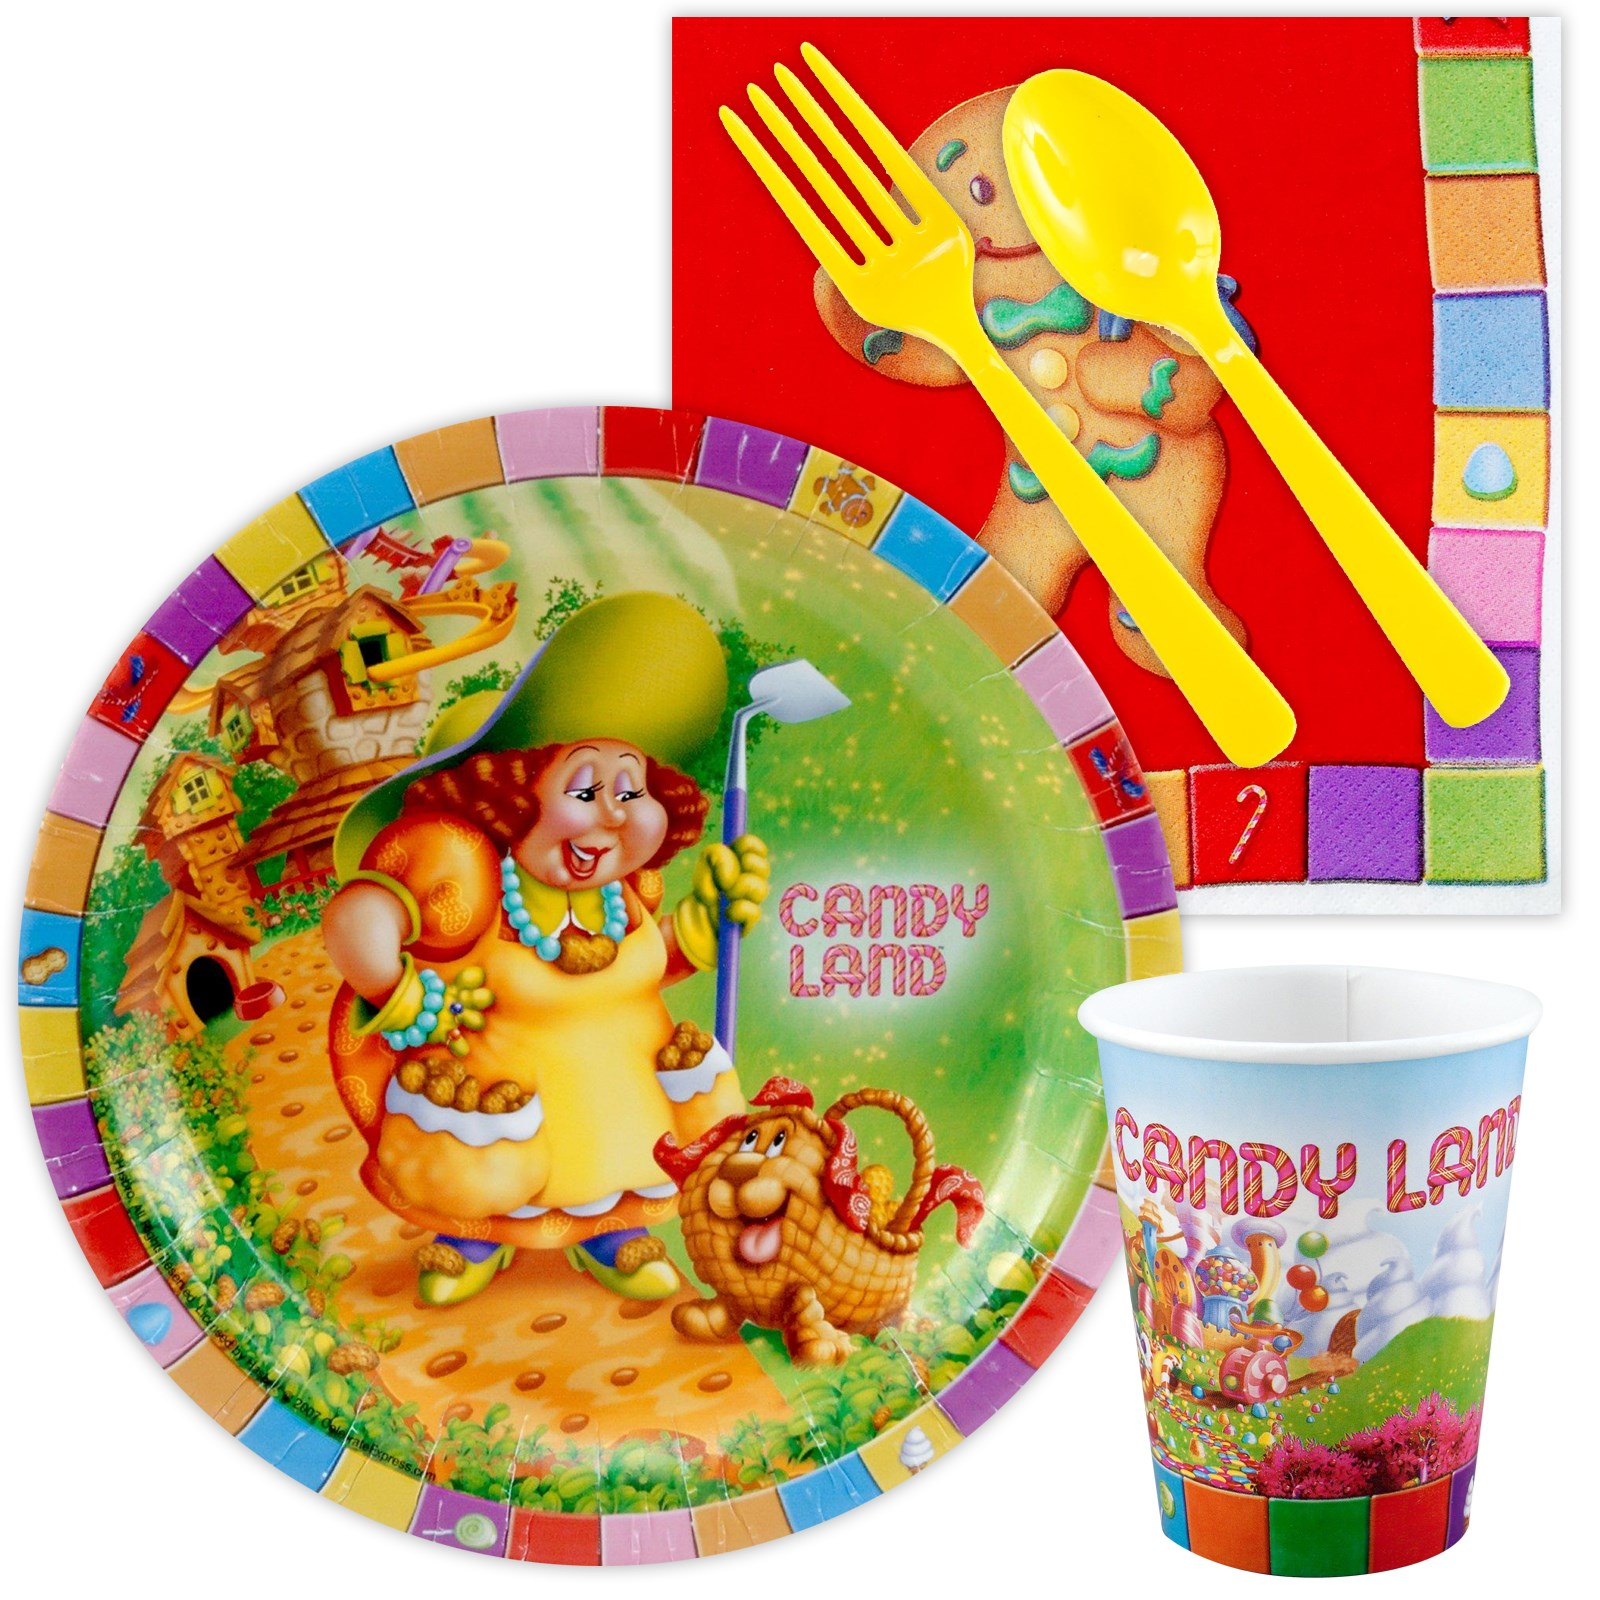 Image of Candy Land Playtime Snack Pack